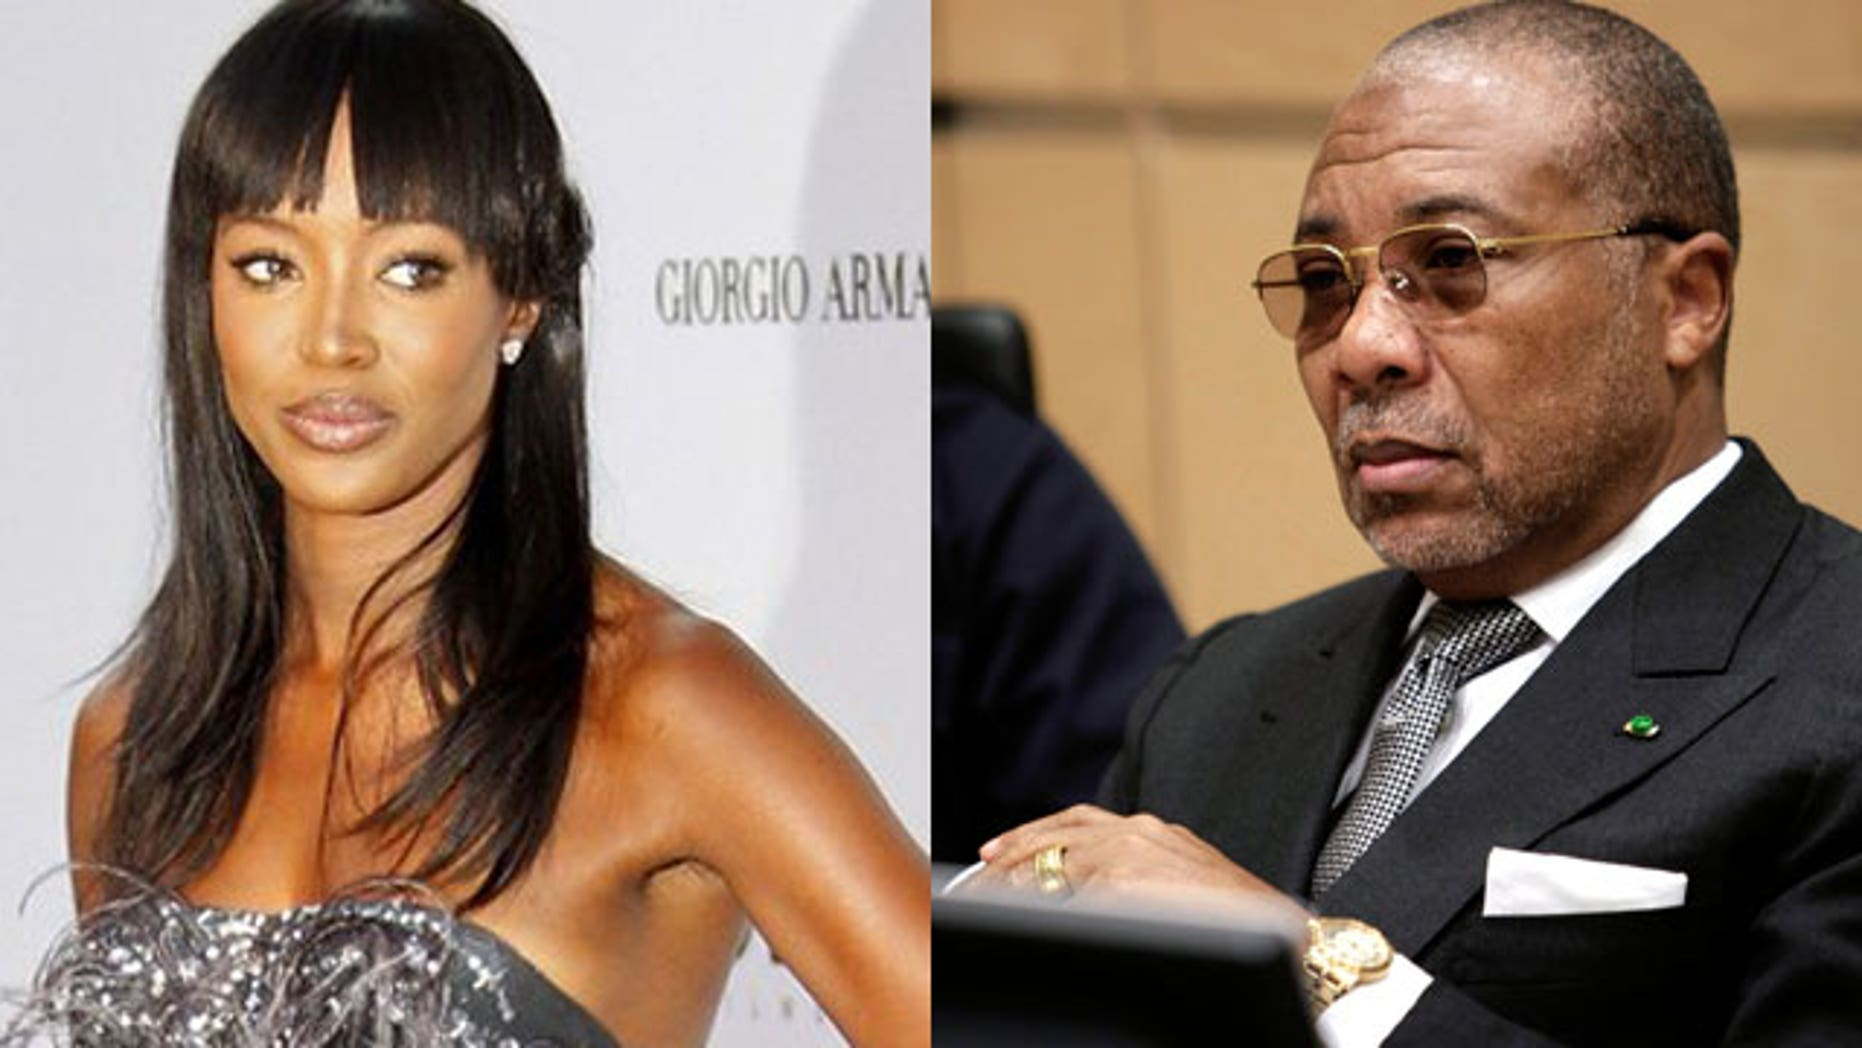 Naomi Campbell, left, and Charles Taylor, former president of Liberia.